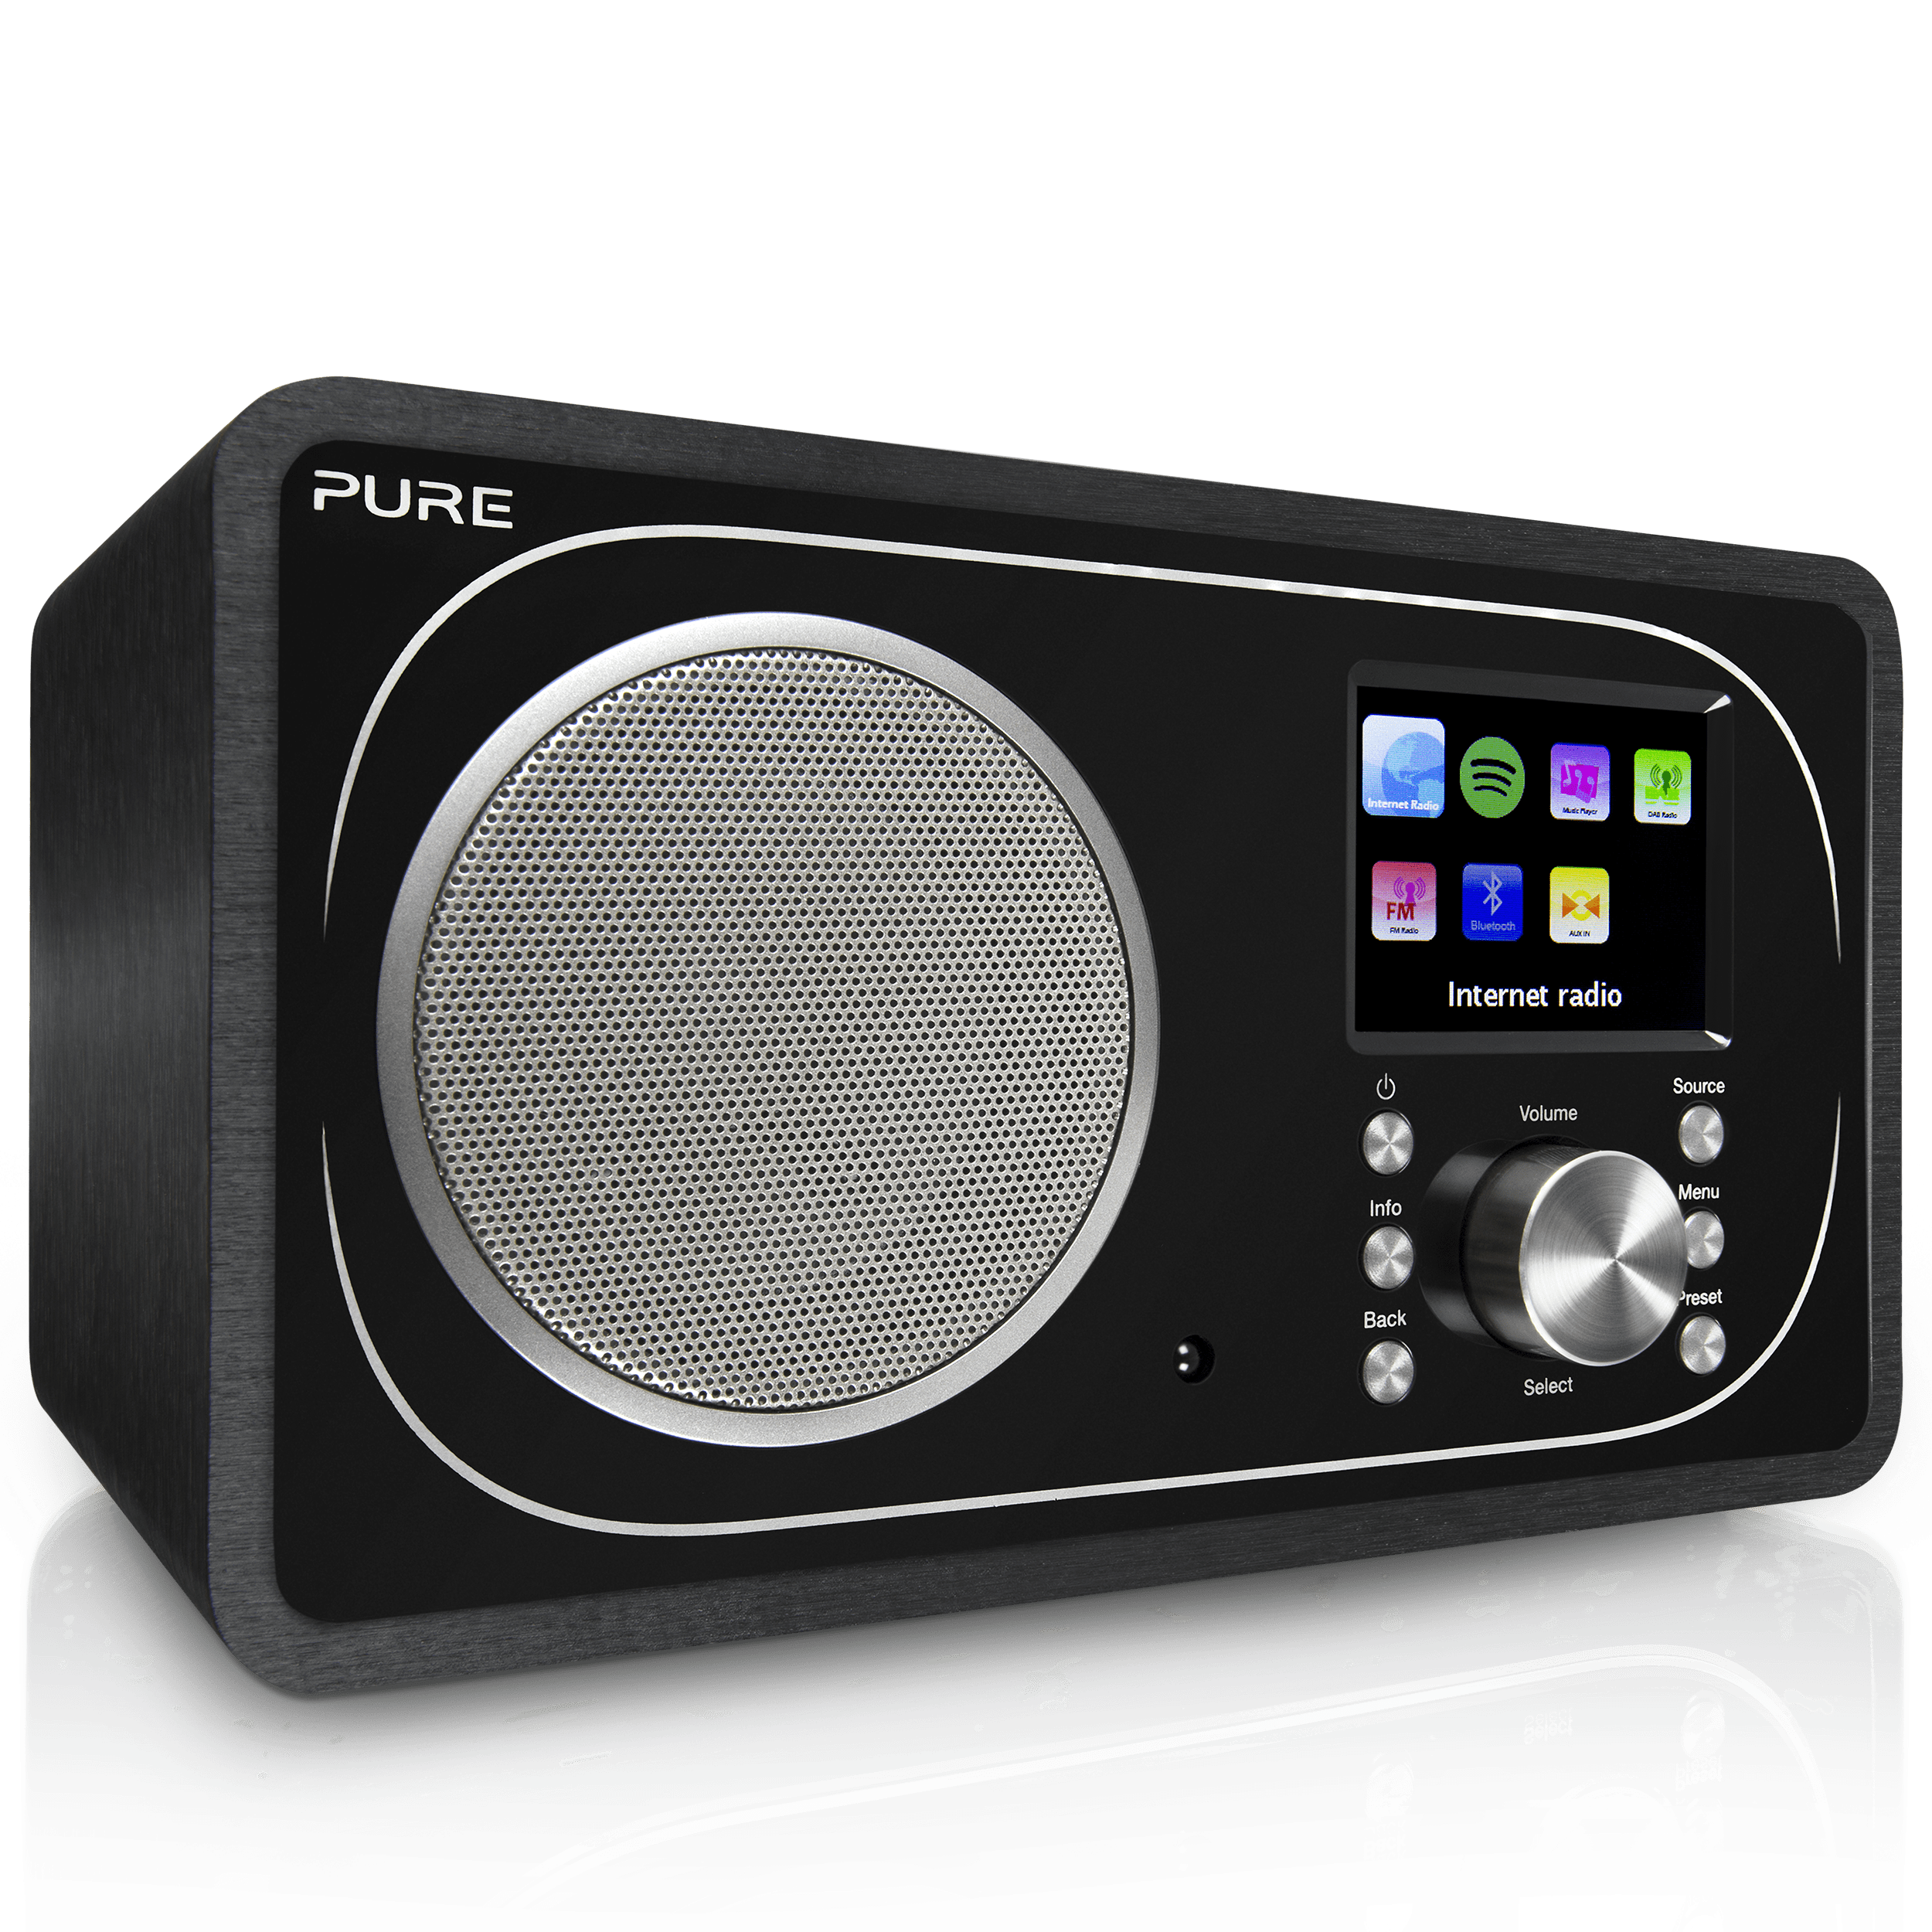 Radio png images. Pure transparent stickpng electronics